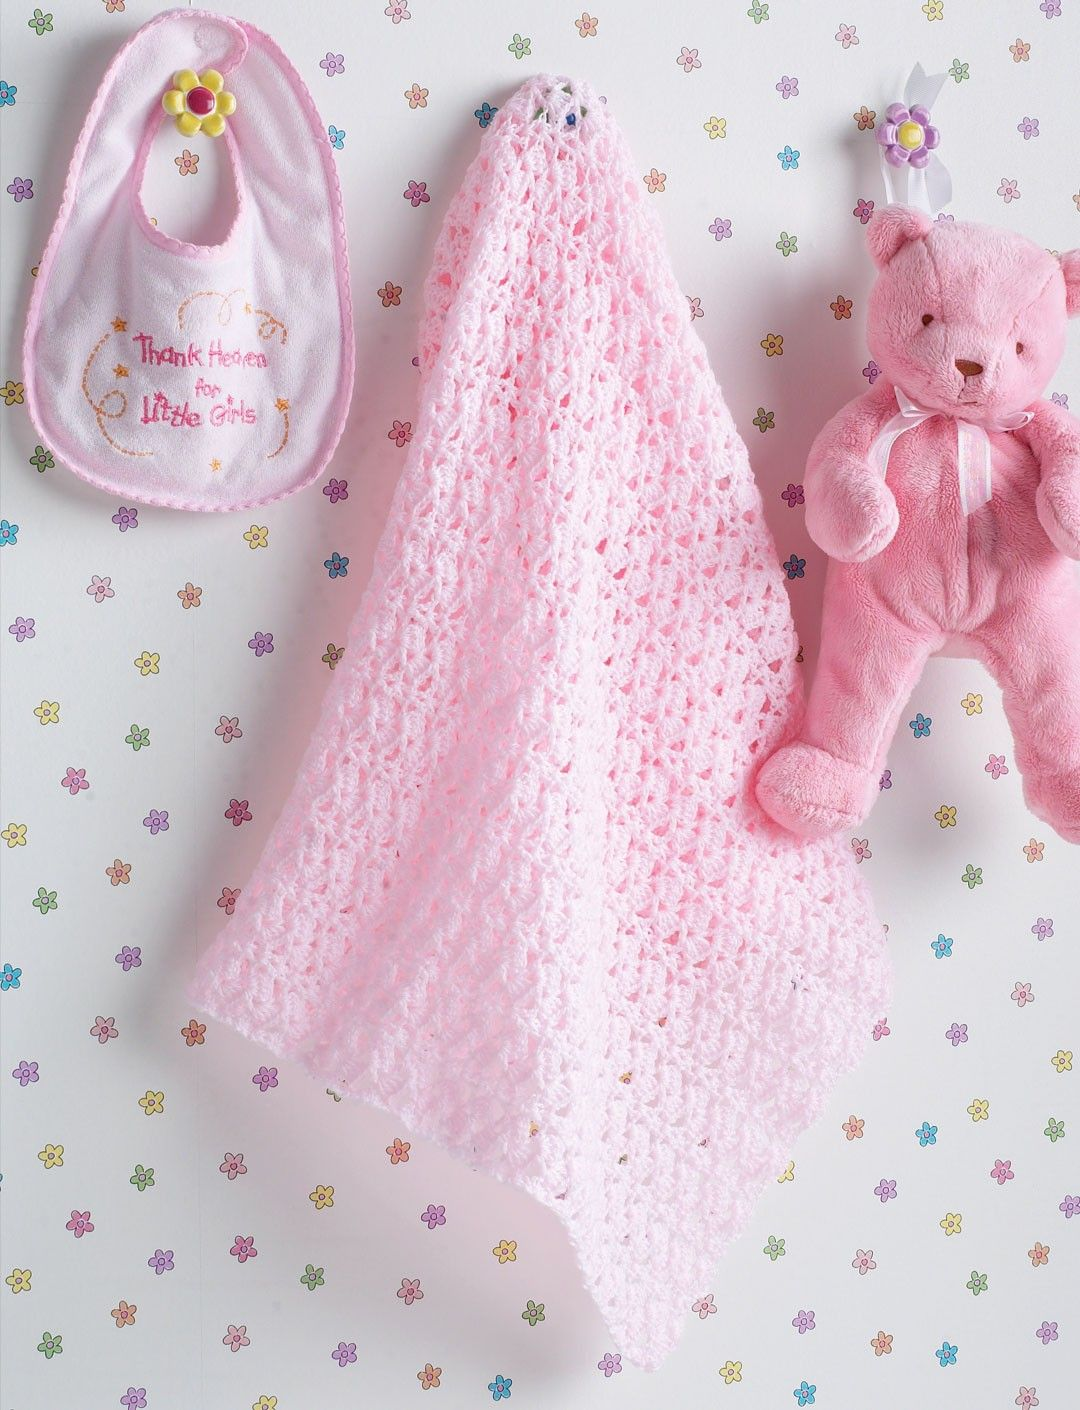 Yarnspirations bernat beautiful baby blanket patterns beautiful baby blanket in bernat baby discover more patterns by bernat at loveknitting the world largest range of knitting supplies we stock patterns fandeluxe Images